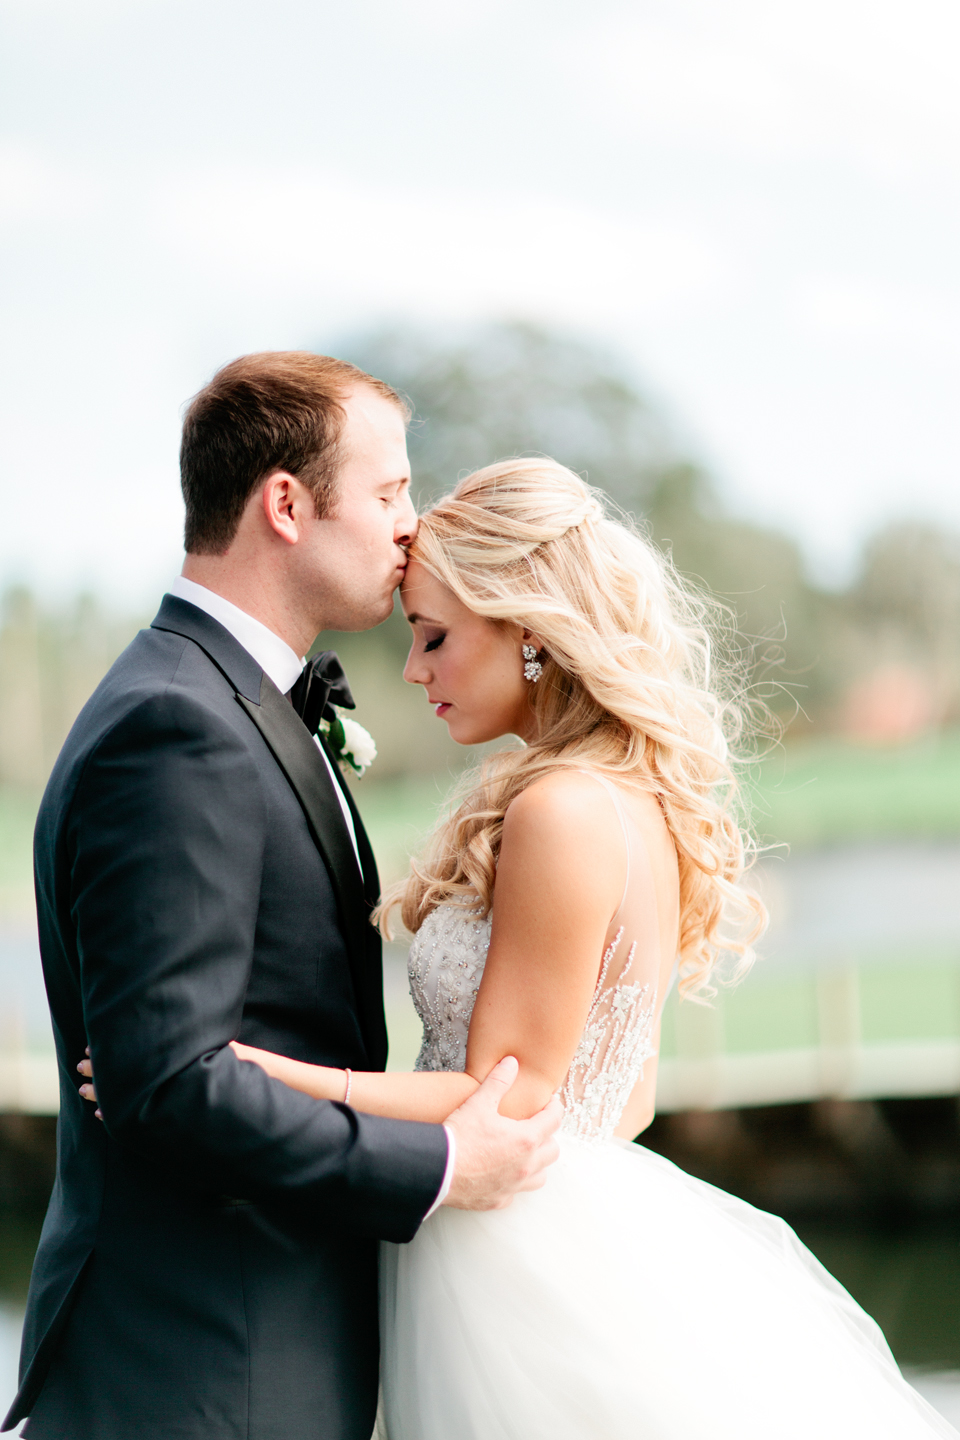 Image of a groom kissing the forehead of his bride on their wedding day at TPC Sawgrass in Ponte Vedra, Florida